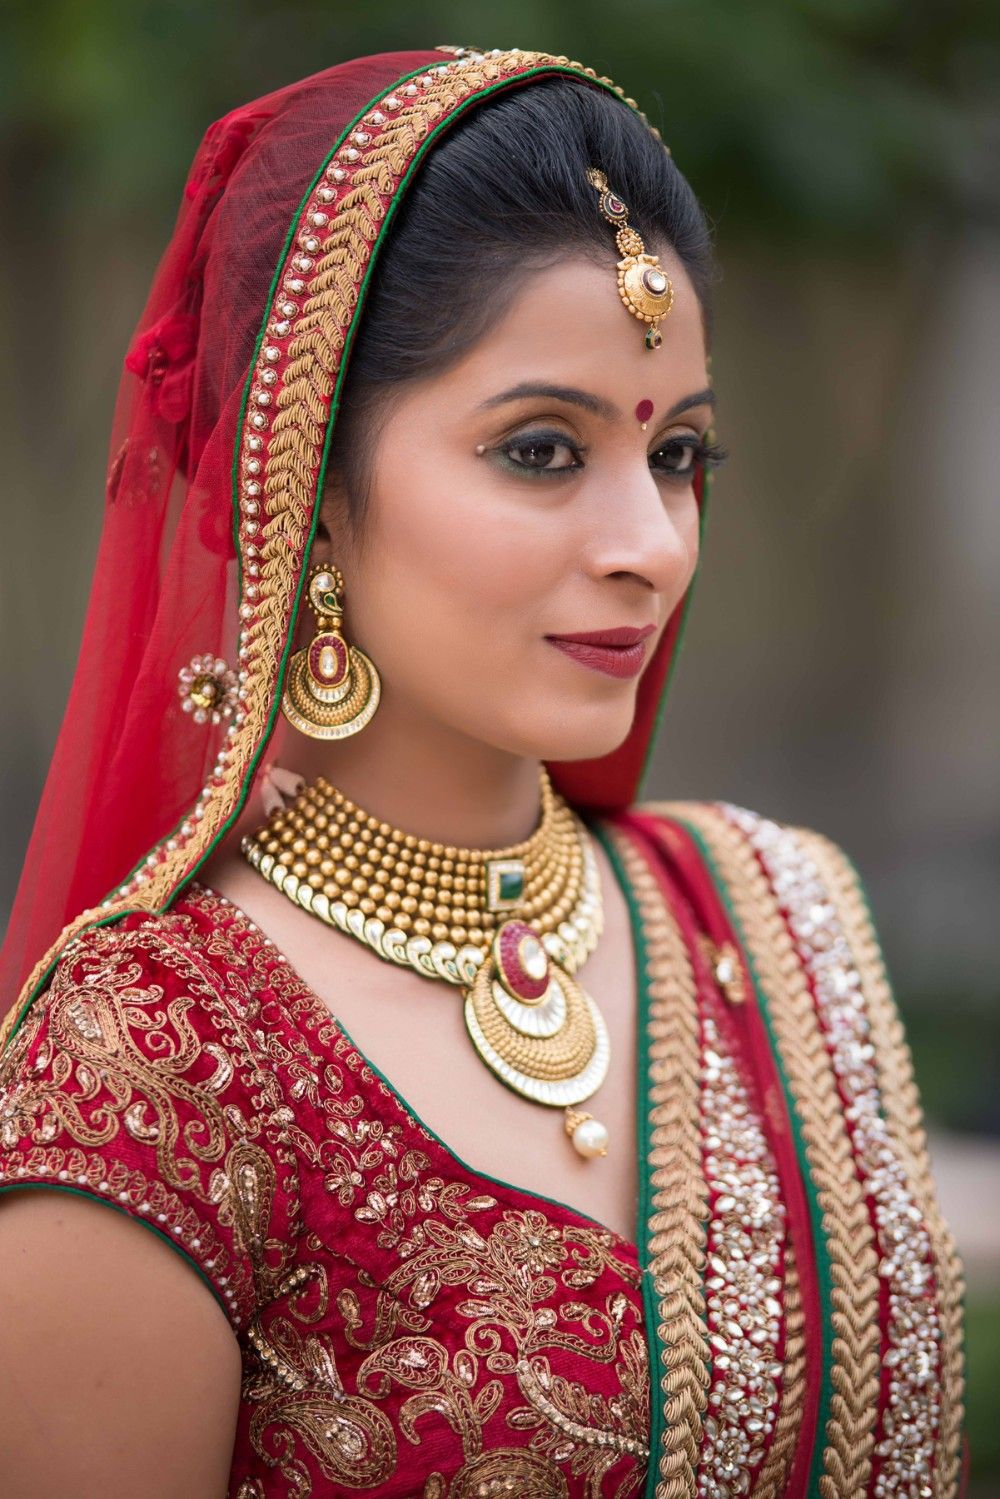 Makeup by Minee in 2020 Beautiful girl indian, Bridal